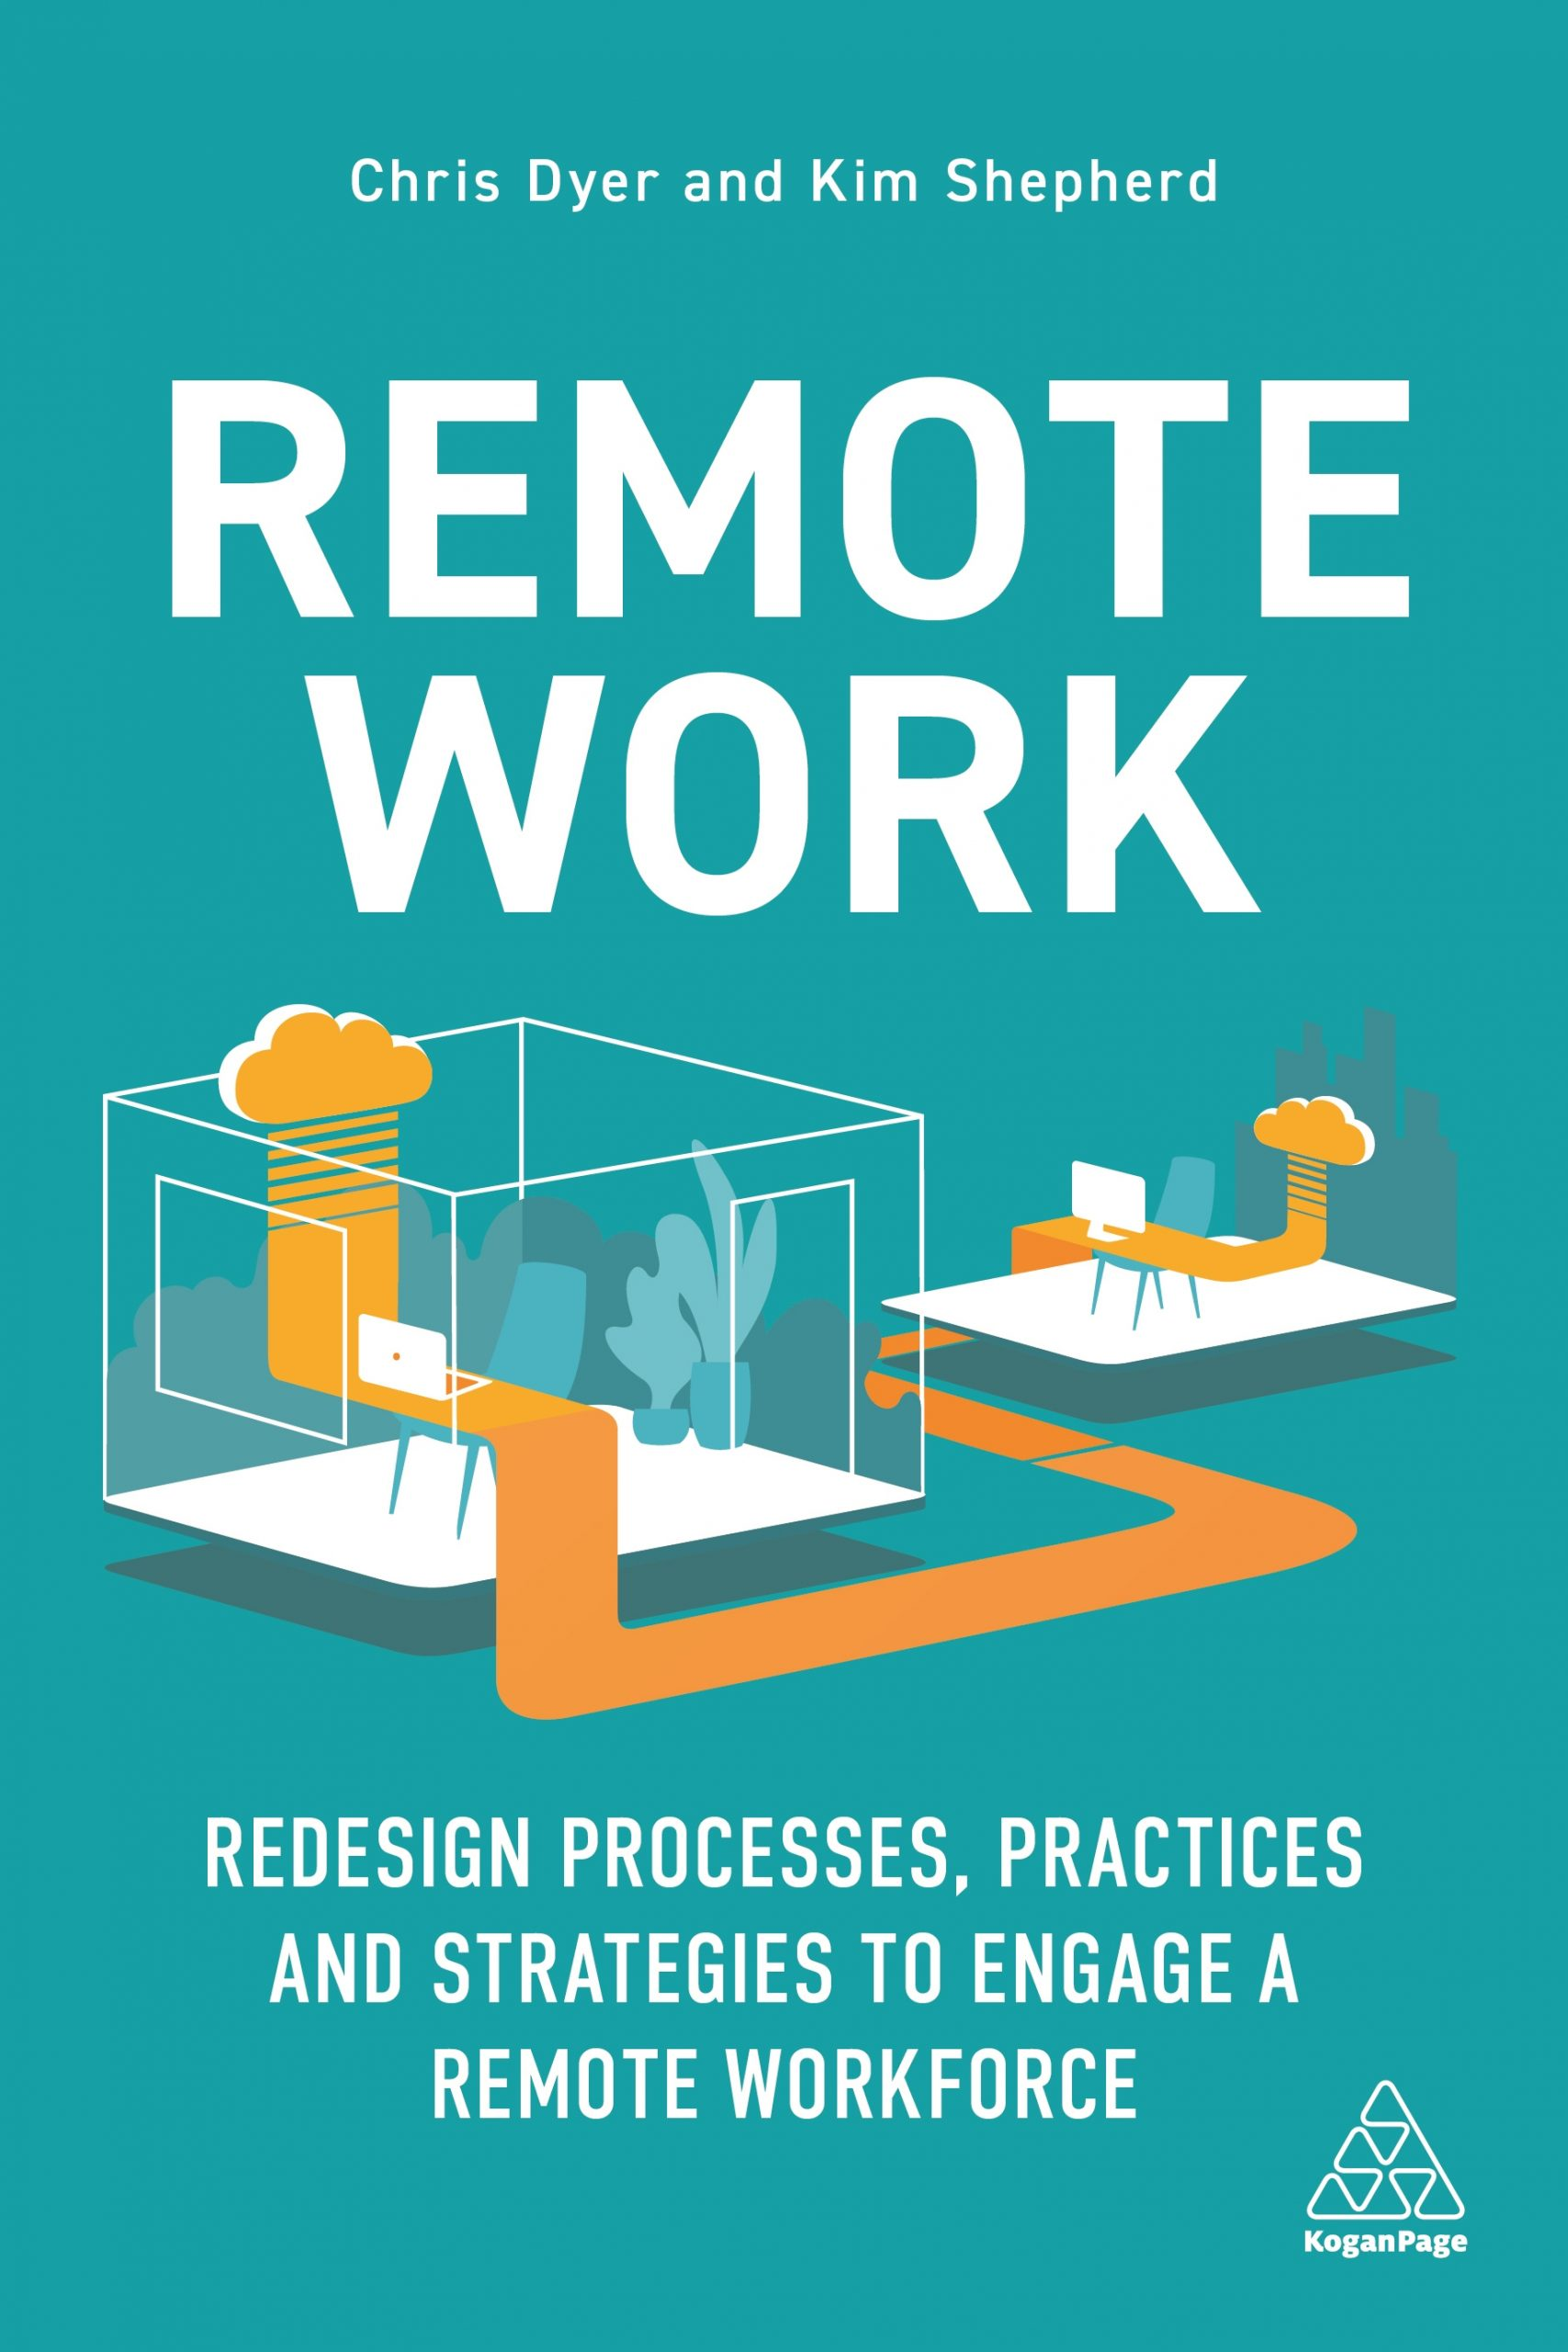 Remote Work: Redesign Processes, Practices and Strategies to Engage a Remote Workforce